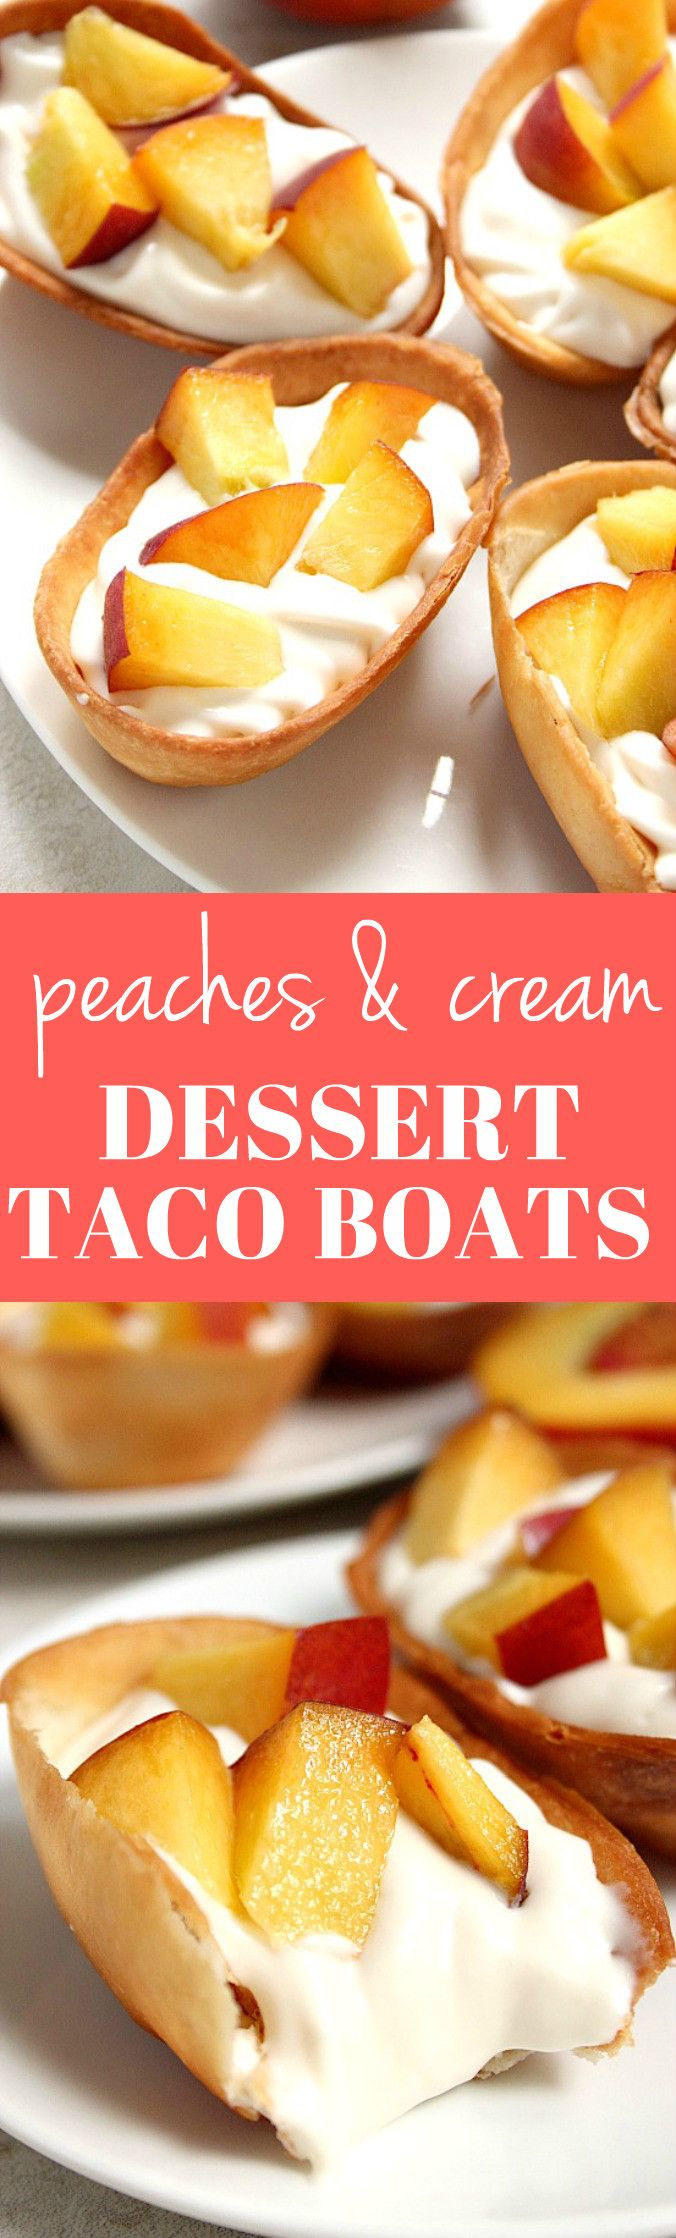 Peaches and Cream Dessert Taco Boats recipe - crispy tortilla taco boats filled with sweet and creamy cheesecake filling and topped with fresh, chopped juicy peaches. This quick and easy dessert disappeared quickly in our house!